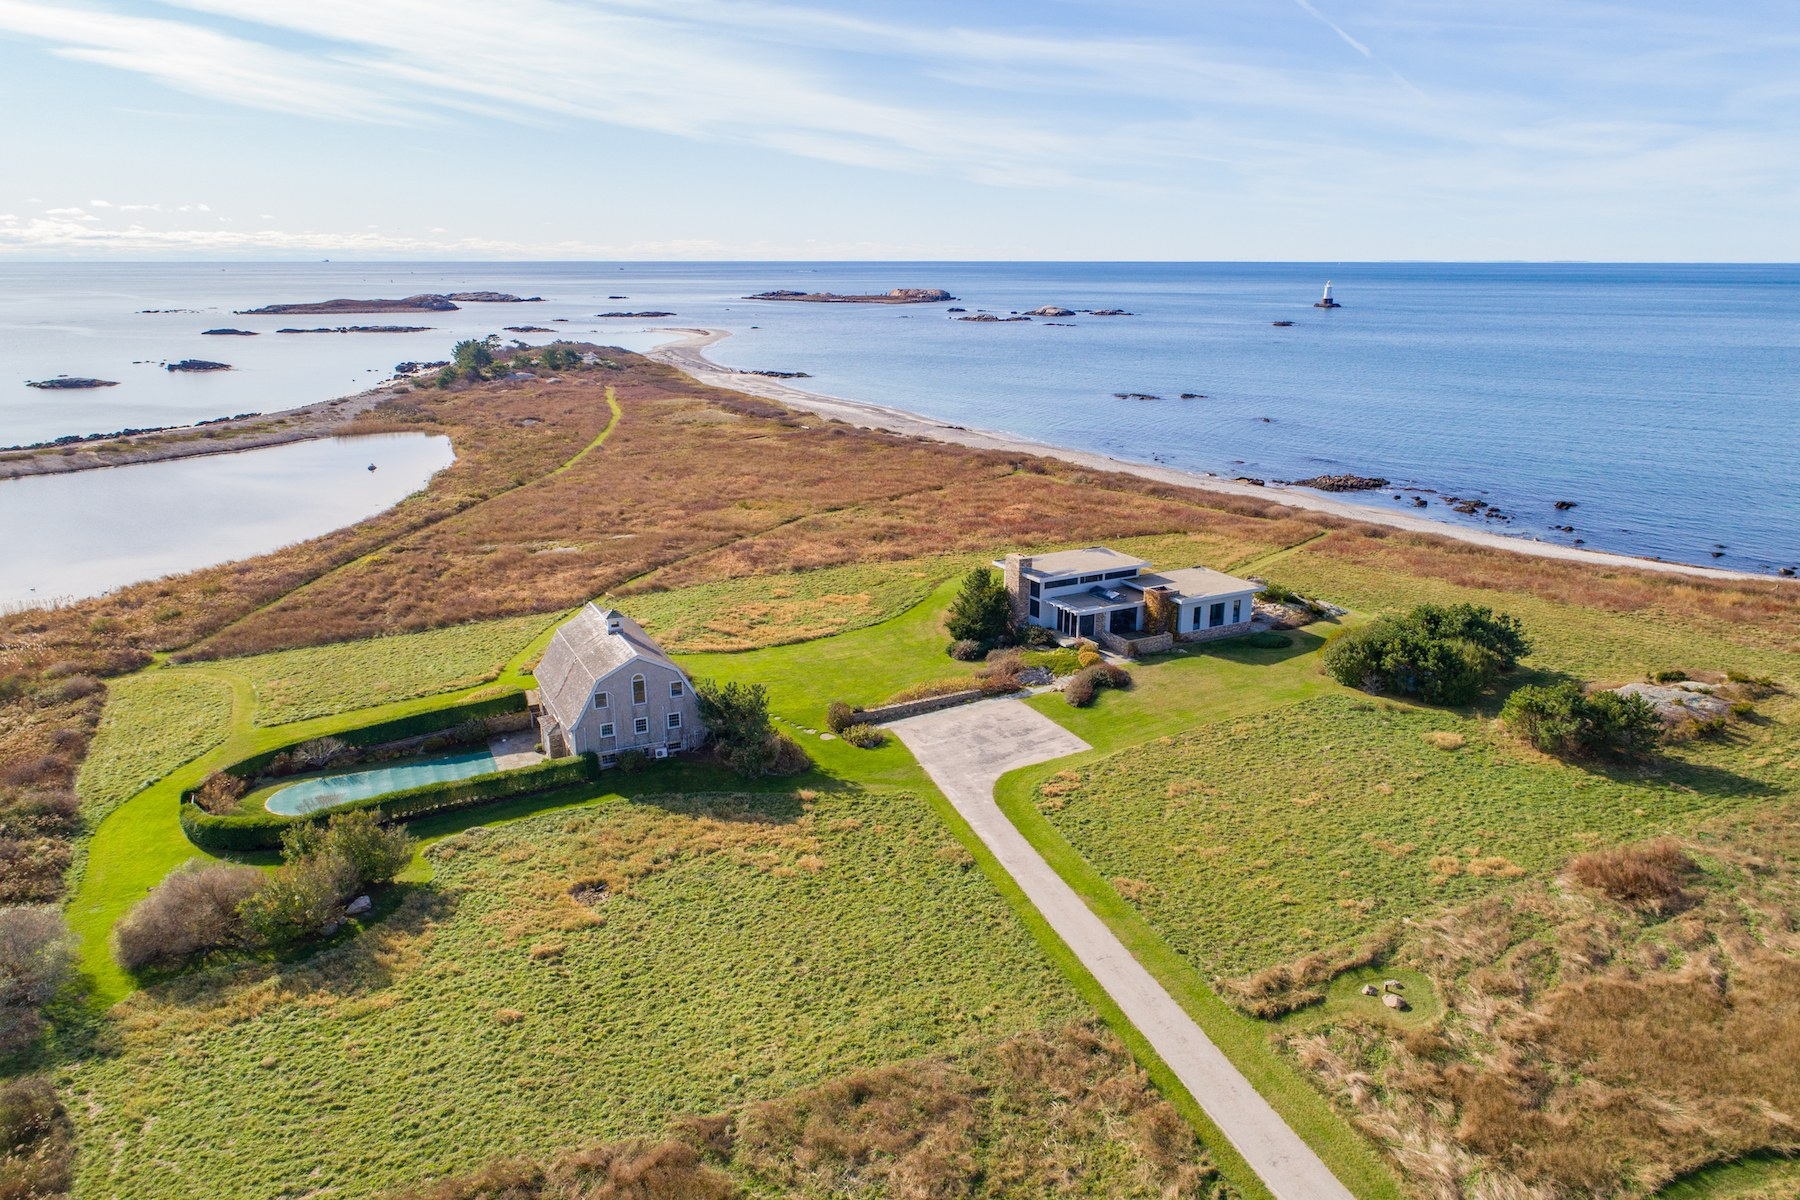 Single Family Homes for Sale at 1 Ohio Road, Little Compton, RI 1 Ohio Road Little Compton, Rhode Island 02837 United States